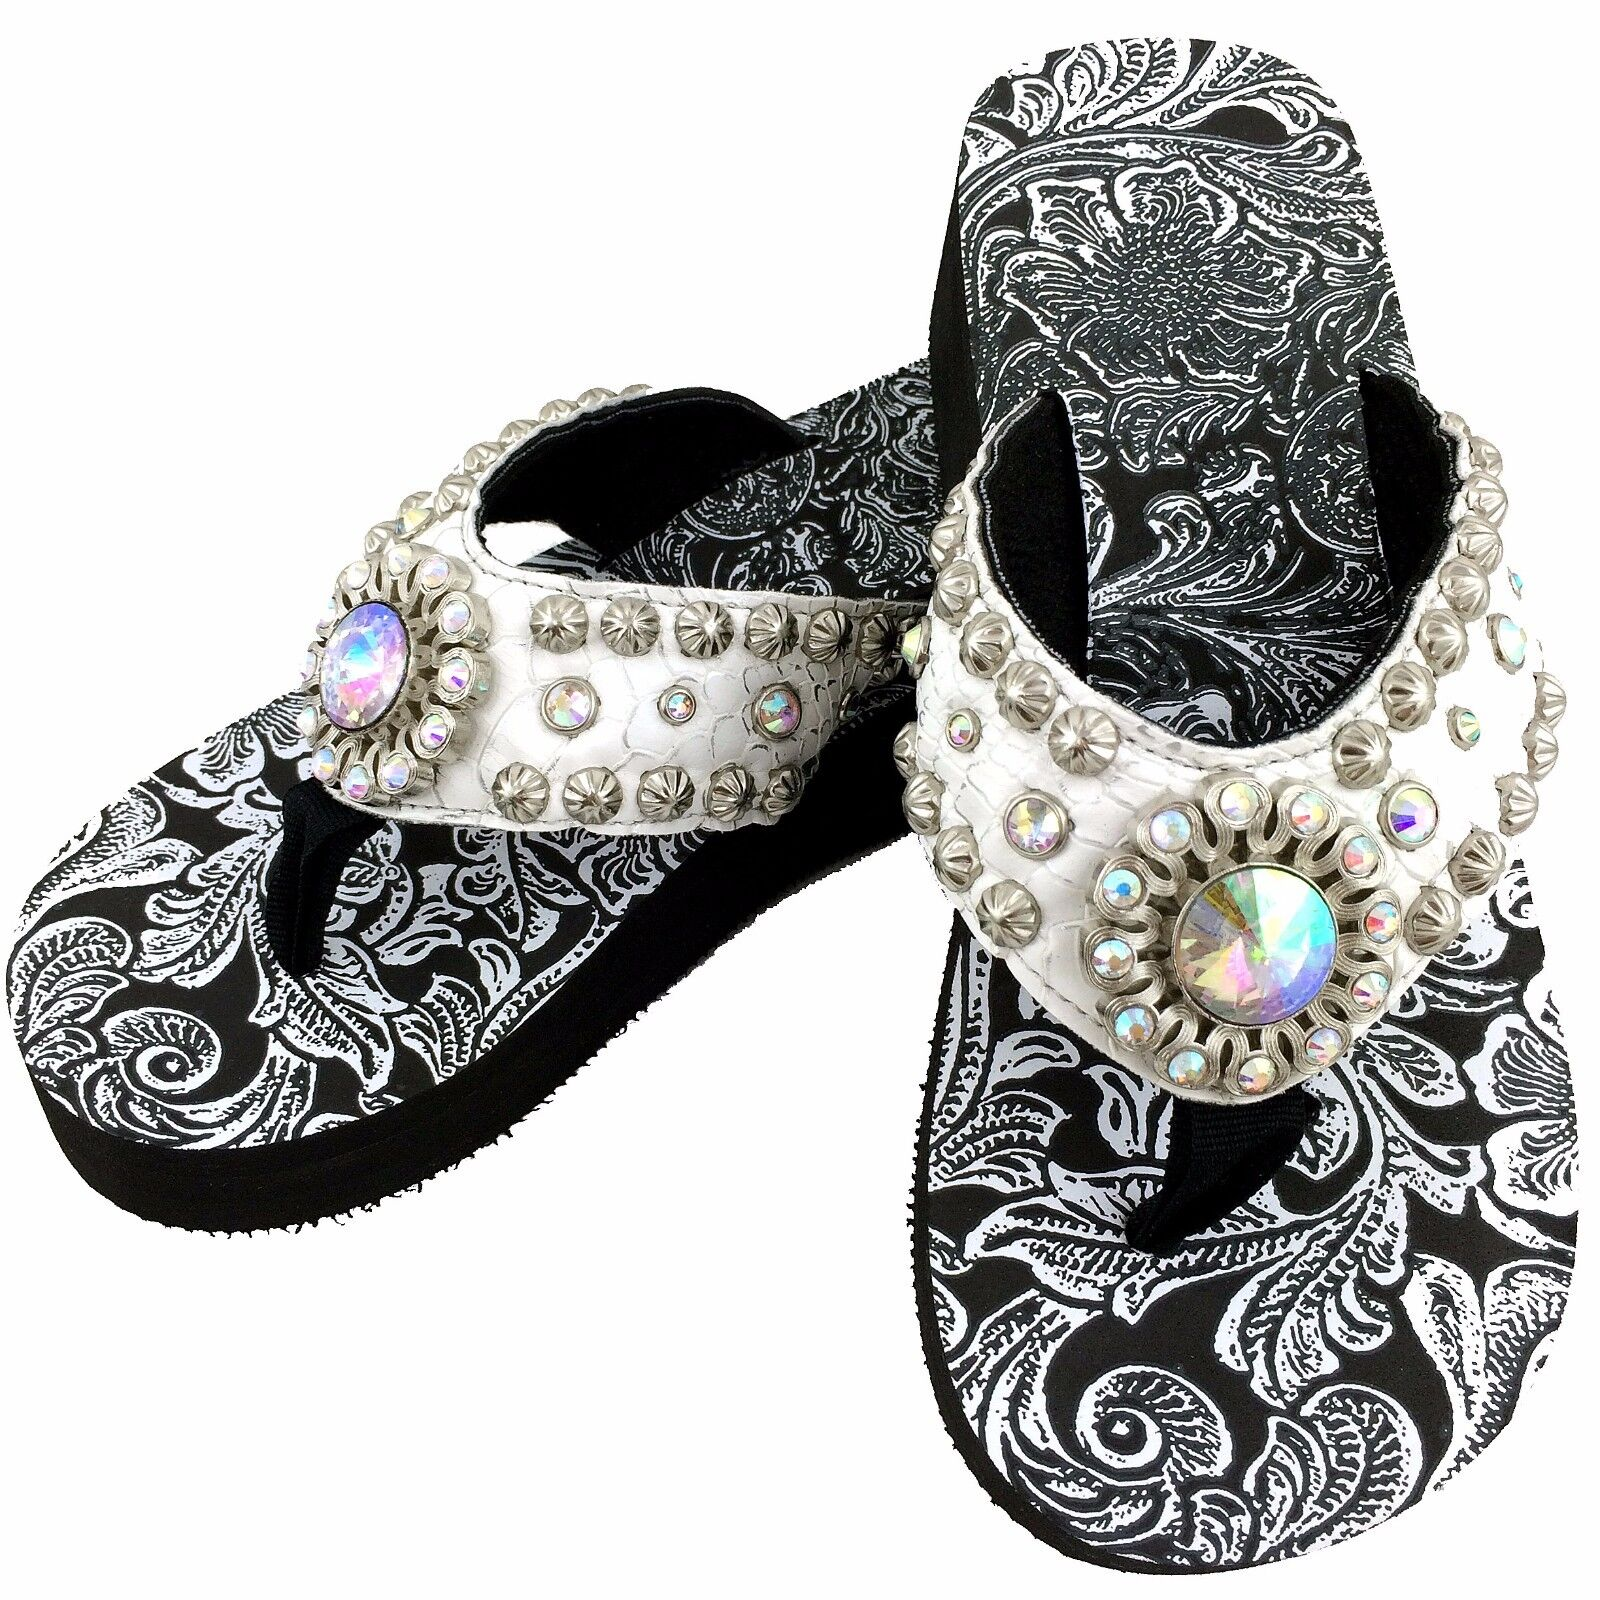 8055929d82ea6 Details about Western White Croc AB Rhinestone Studs Crystal Concho Flip  Flips Sandals